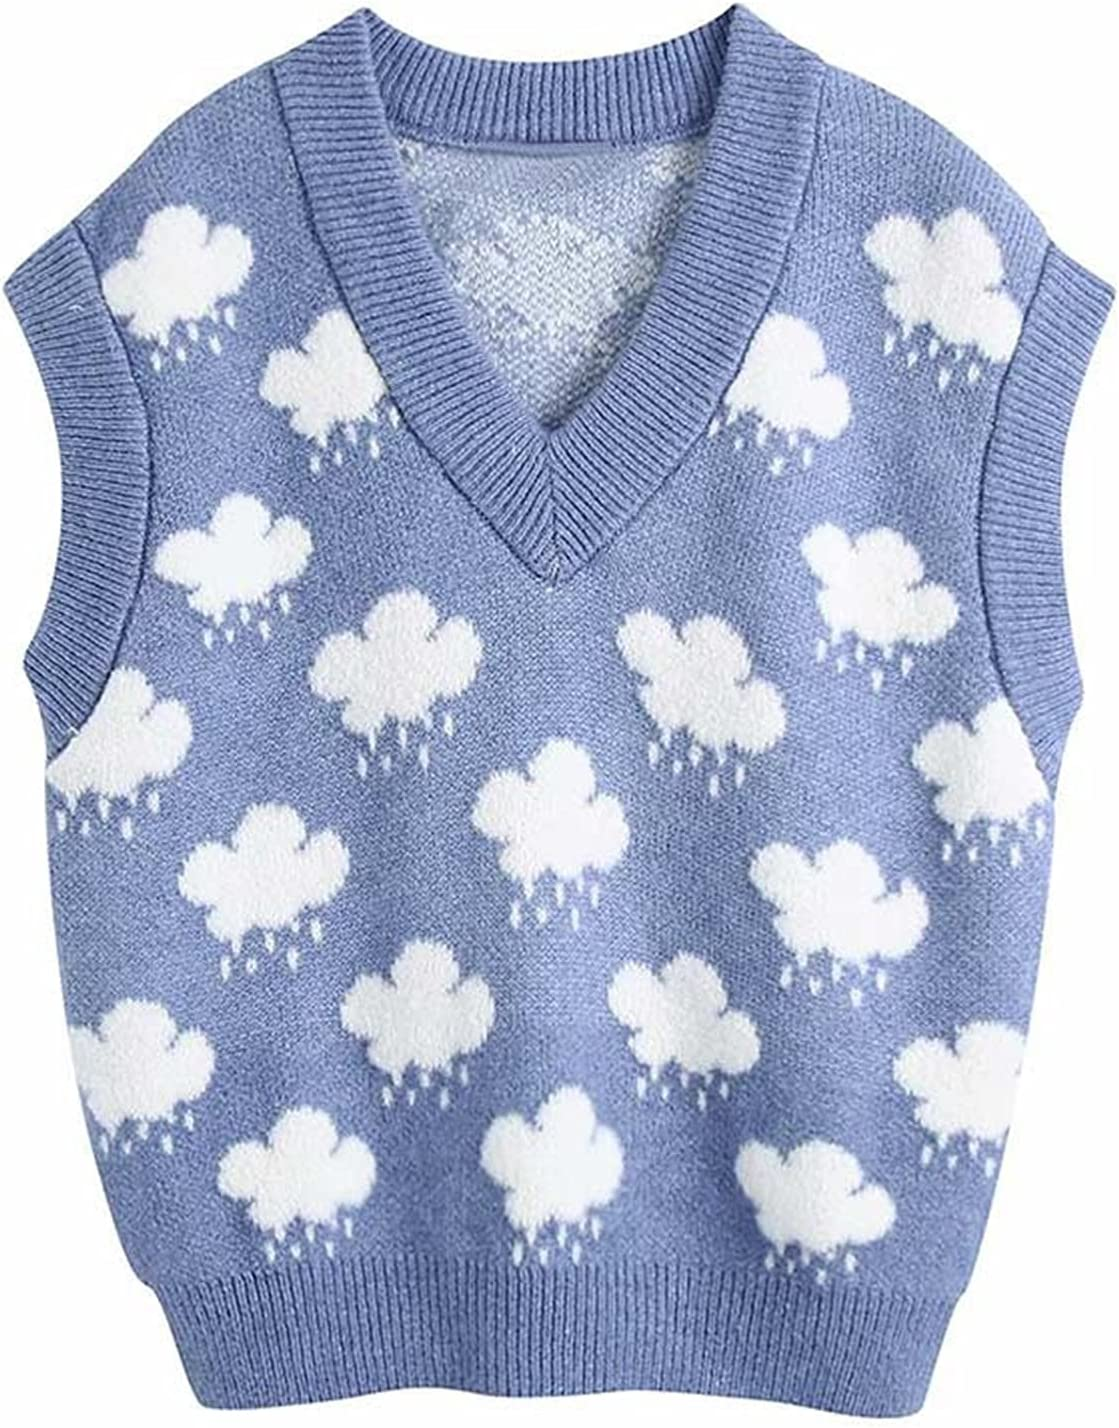 KSFBHC Knitted Sweater Vest Women V Neck Leisure Cloud Sweater Sleeveless Casual Slim Vest Pullovers Tops (Color : Blue, Size : Small)